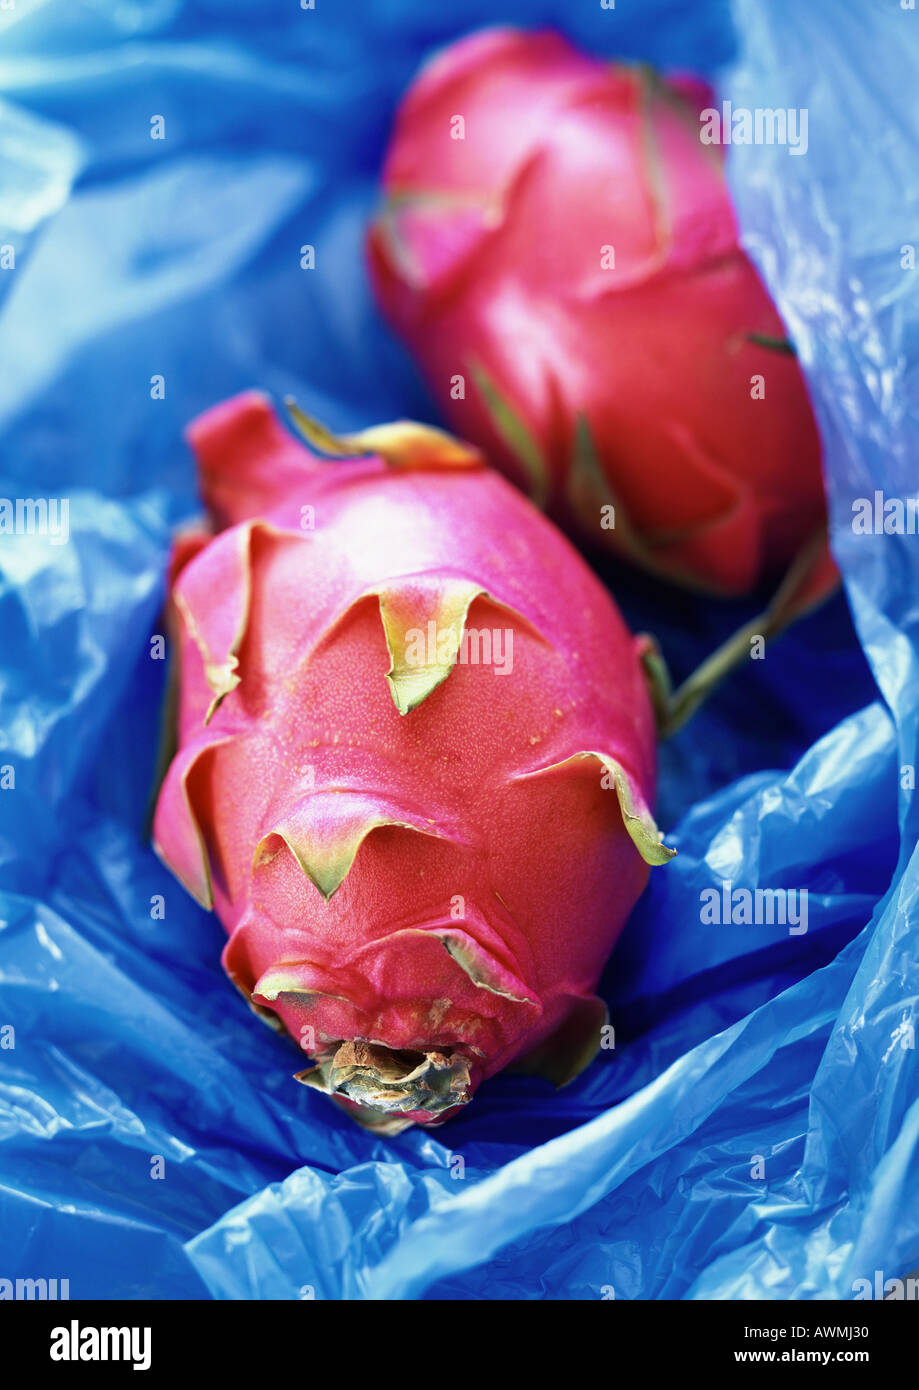 Red pitayas on blue plastic, close-up - Stock Image